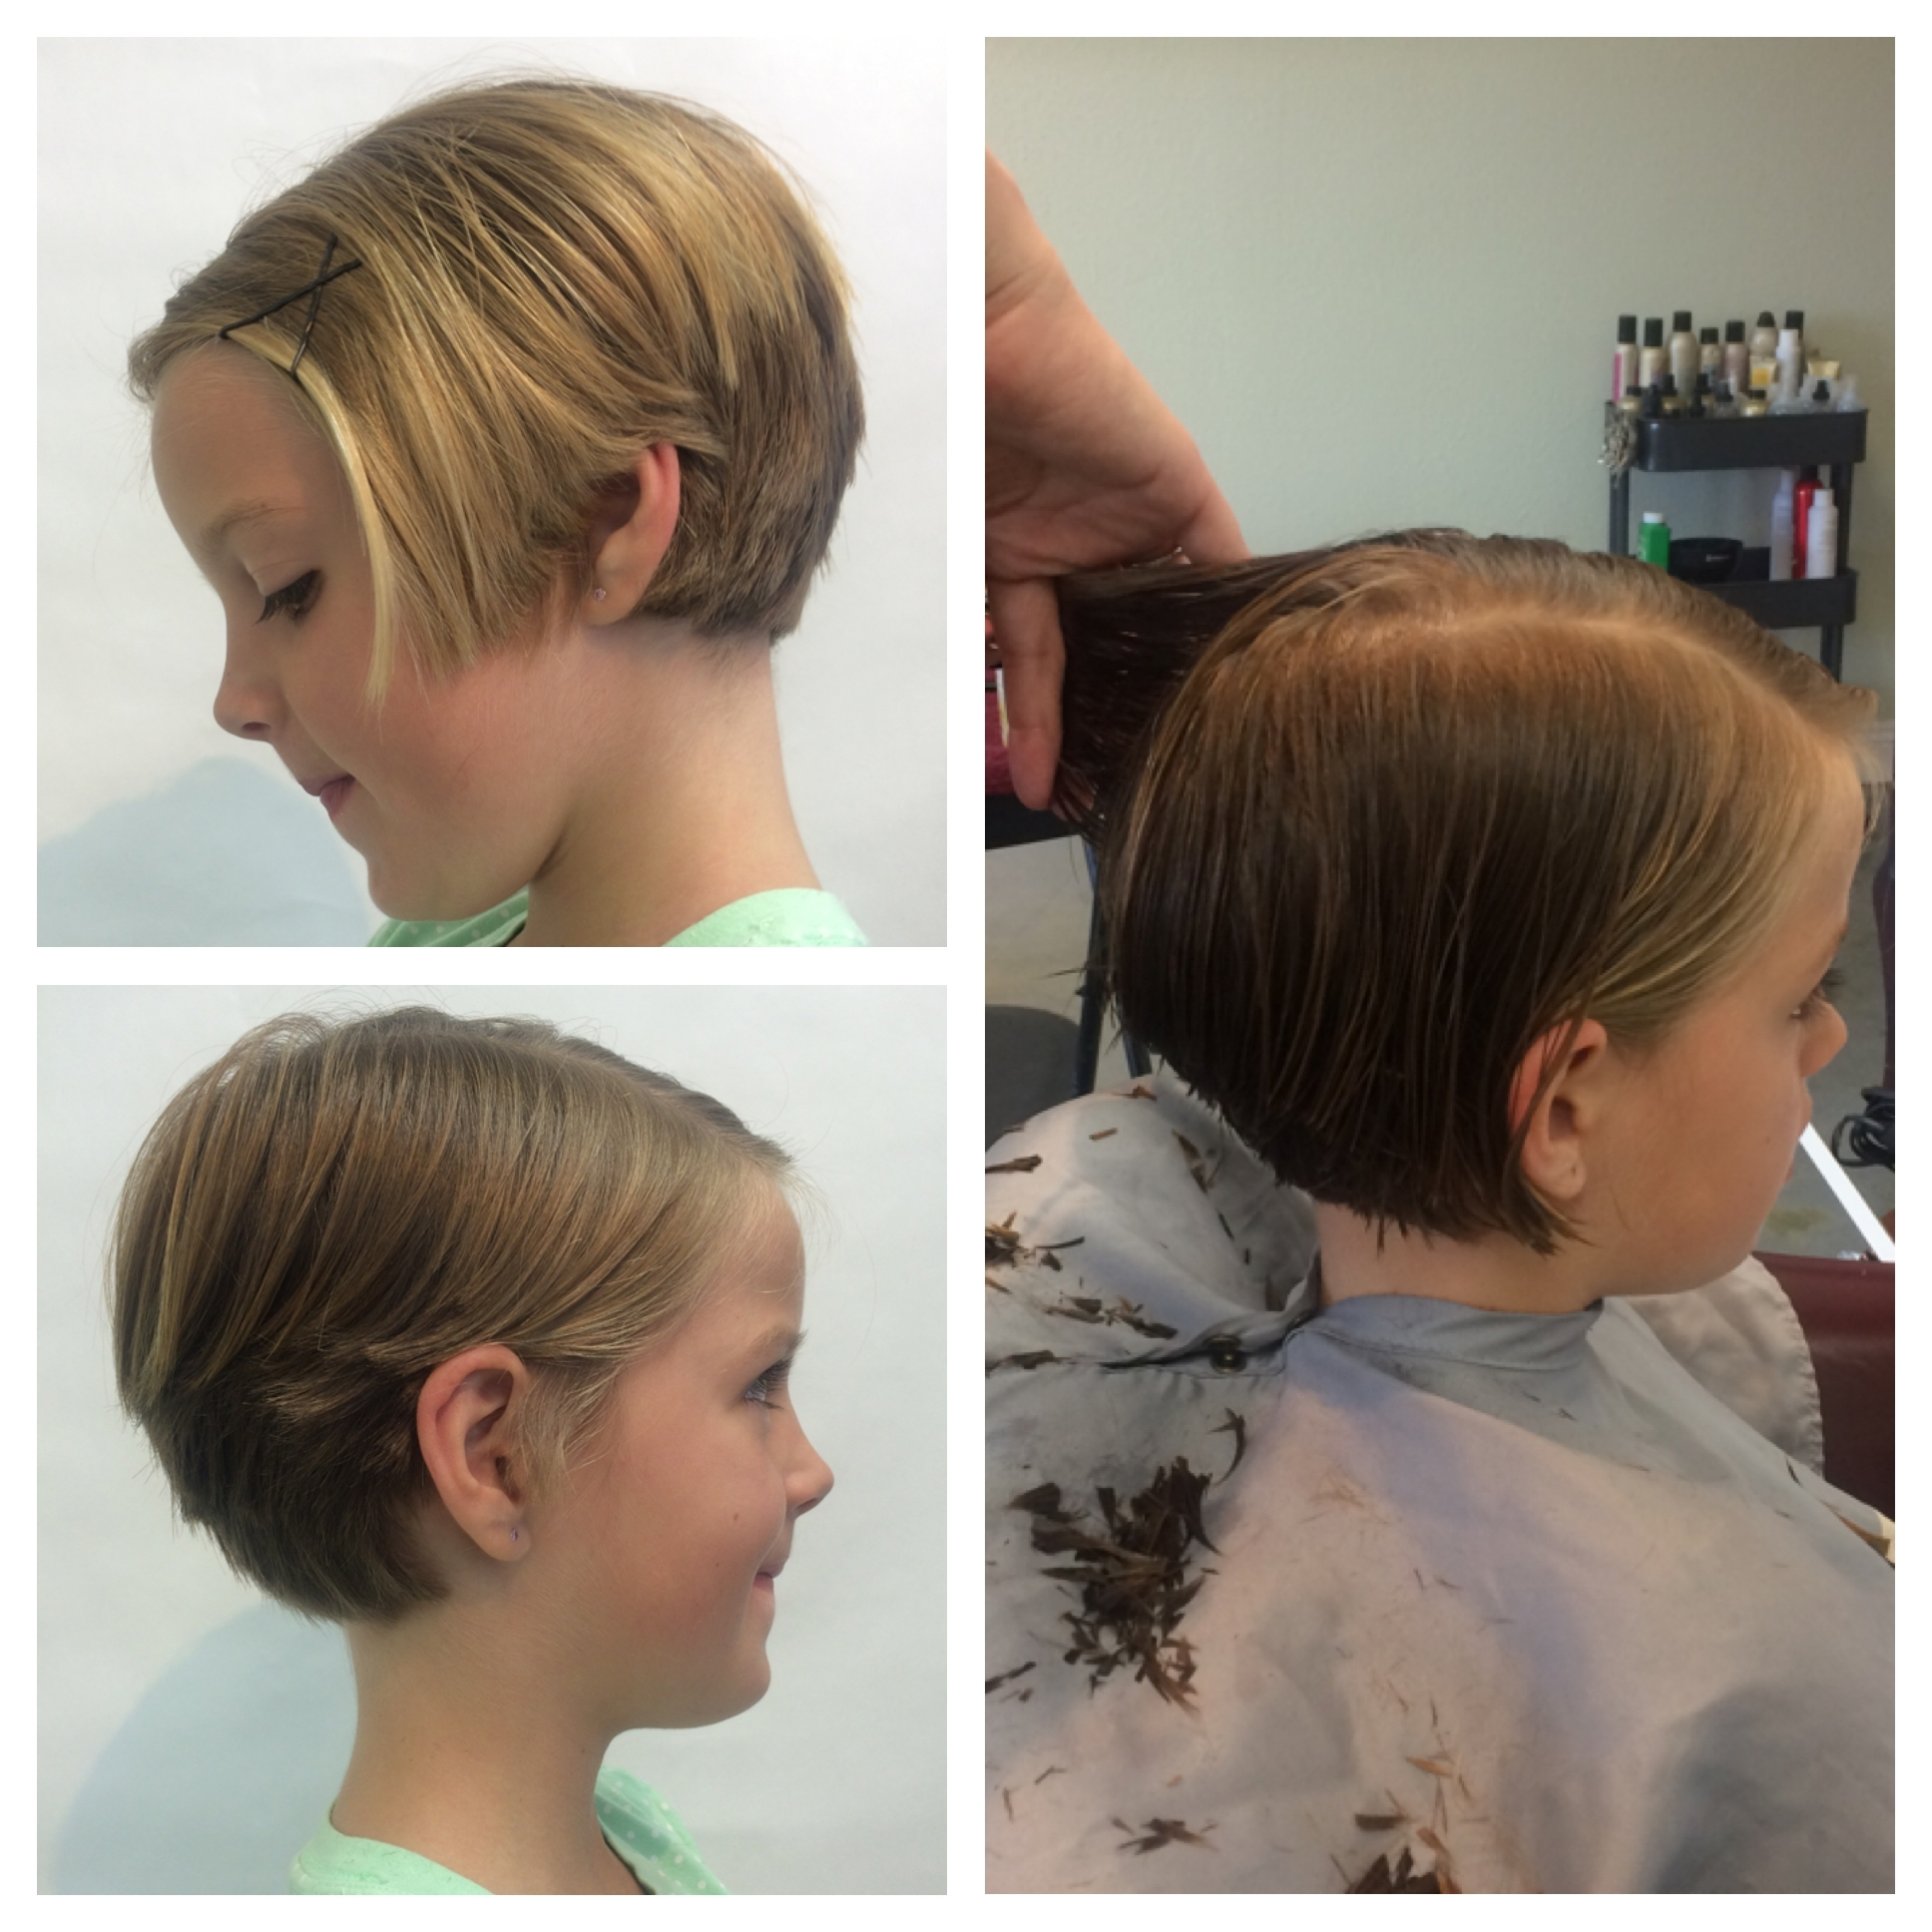 Child Pixie Hair Cut Girls Pixie Hairstyle Cute Short Hair Throughout Most Recently Pixie Hairstyles For Girls (View 8 of 15)